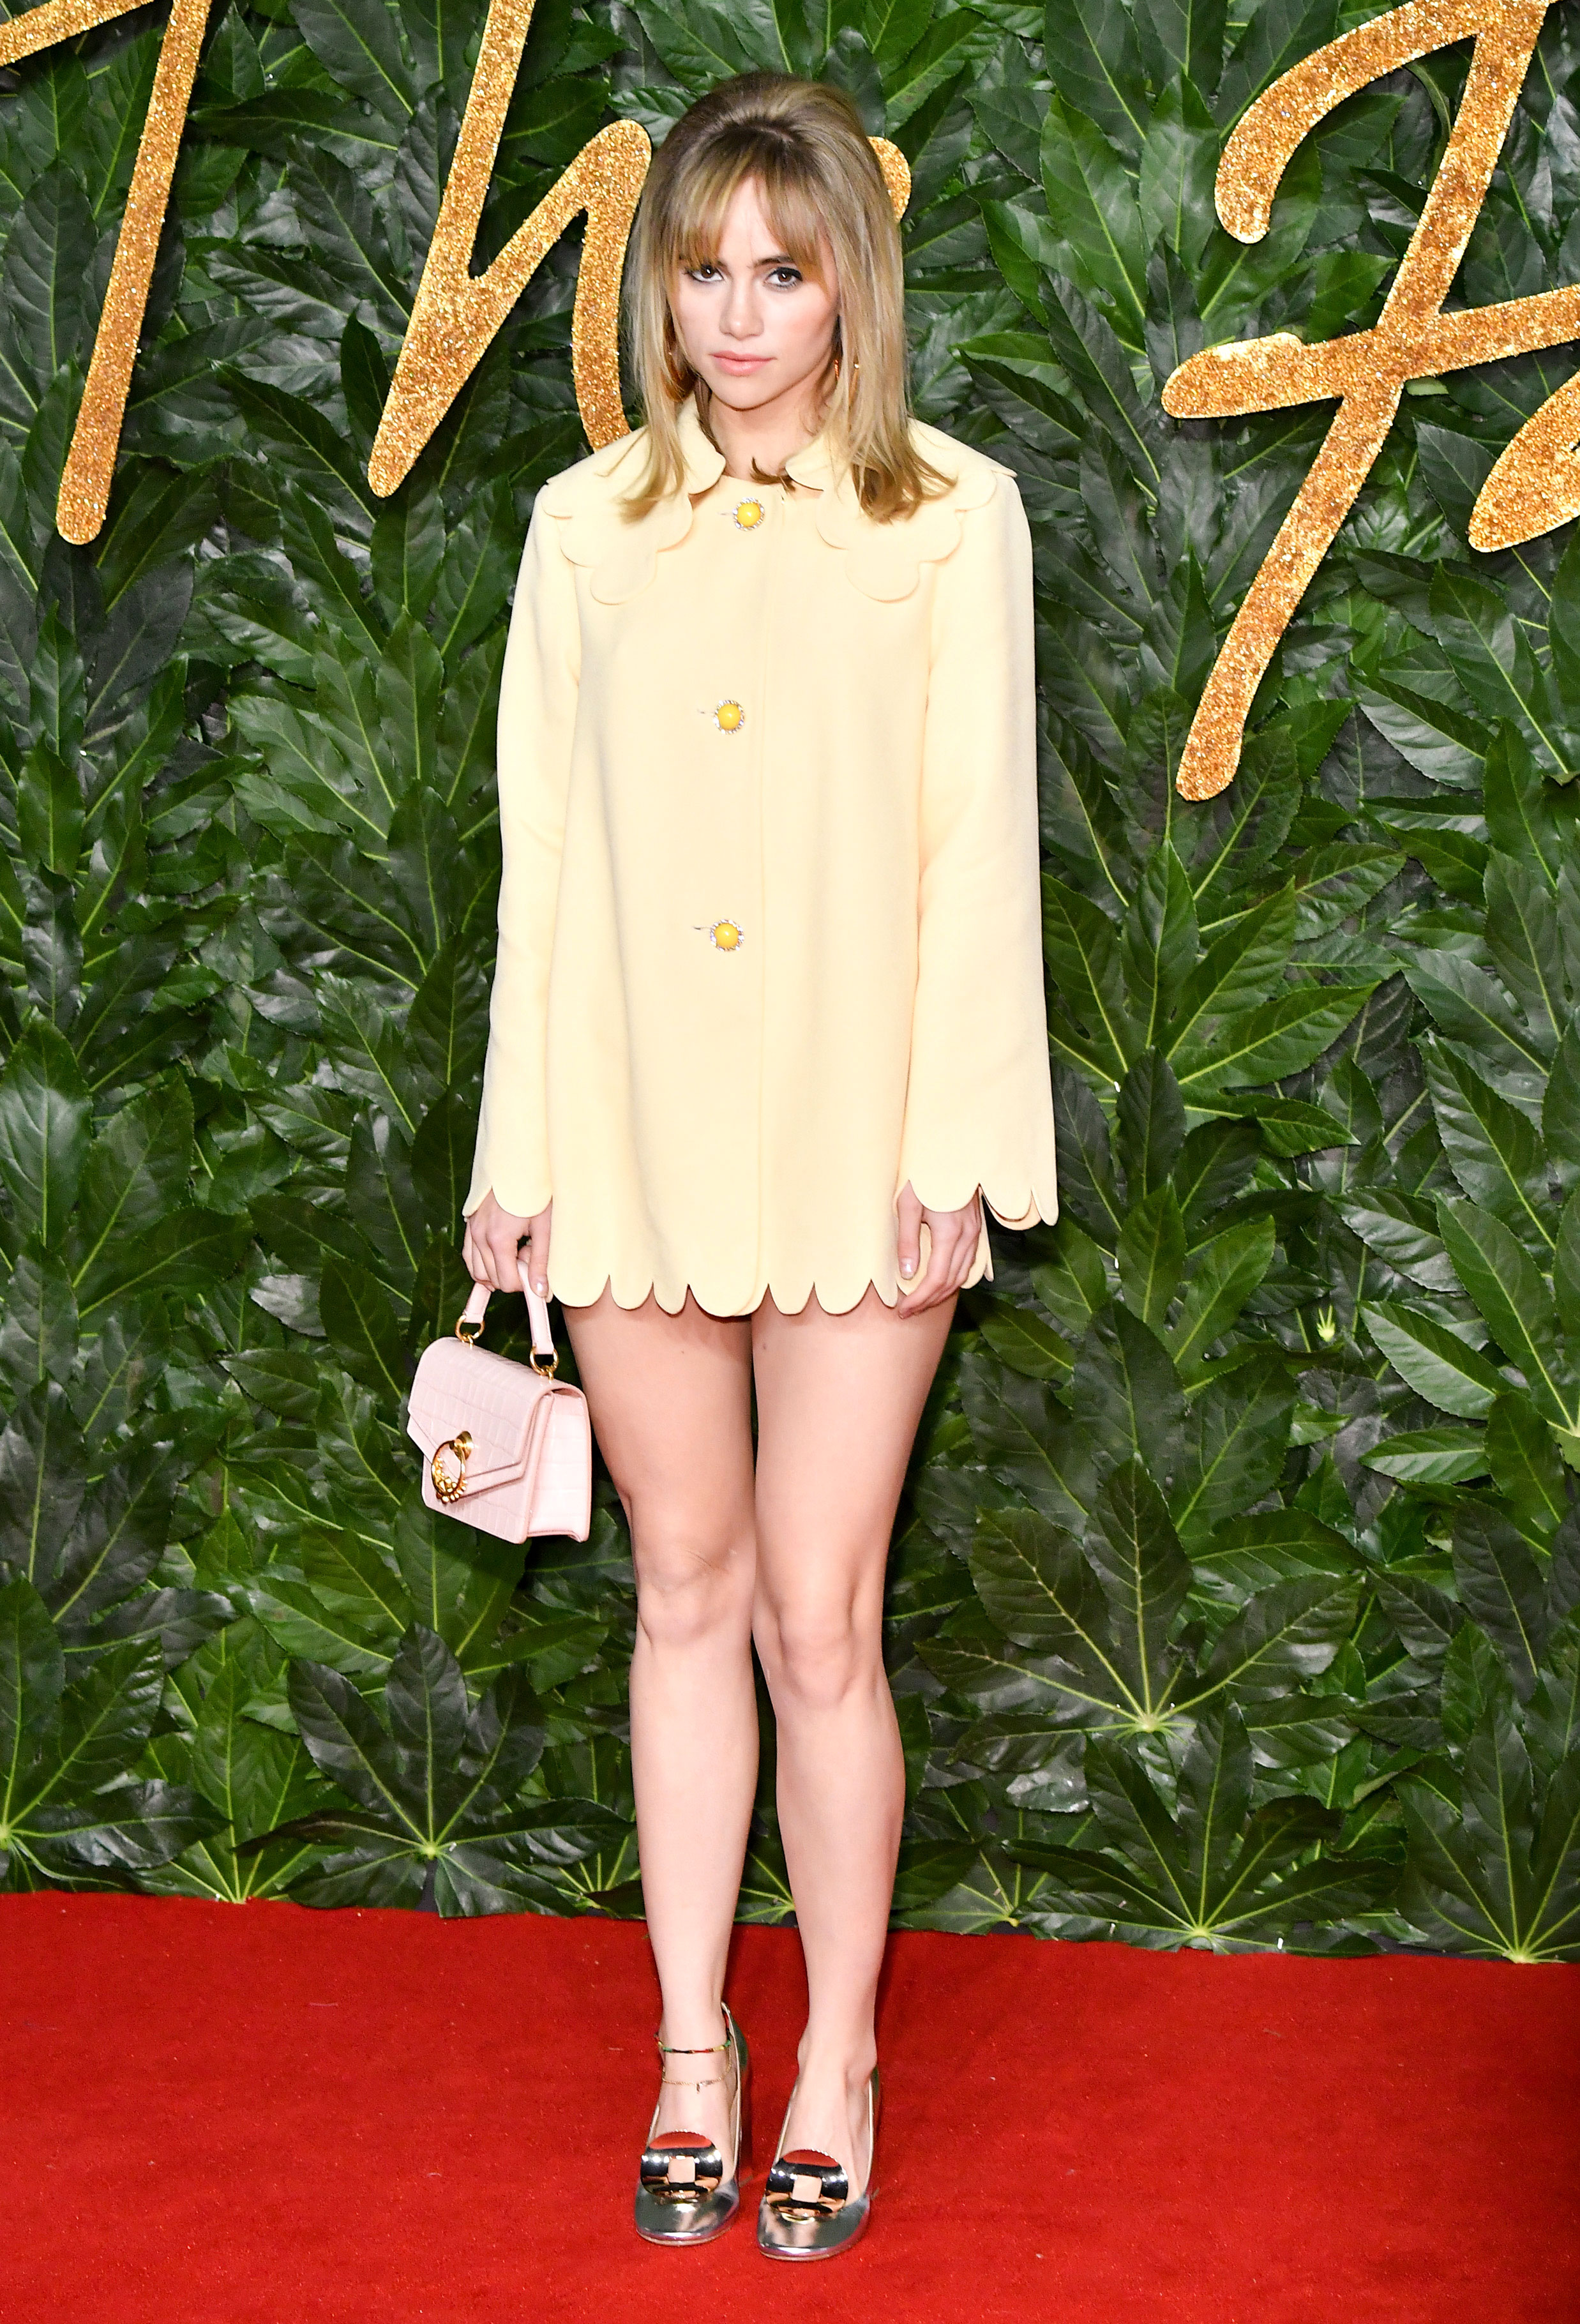 Suki-Waterhouse - The blonde beauty kept things short and sweet in a pale yellow Mulberry frock.